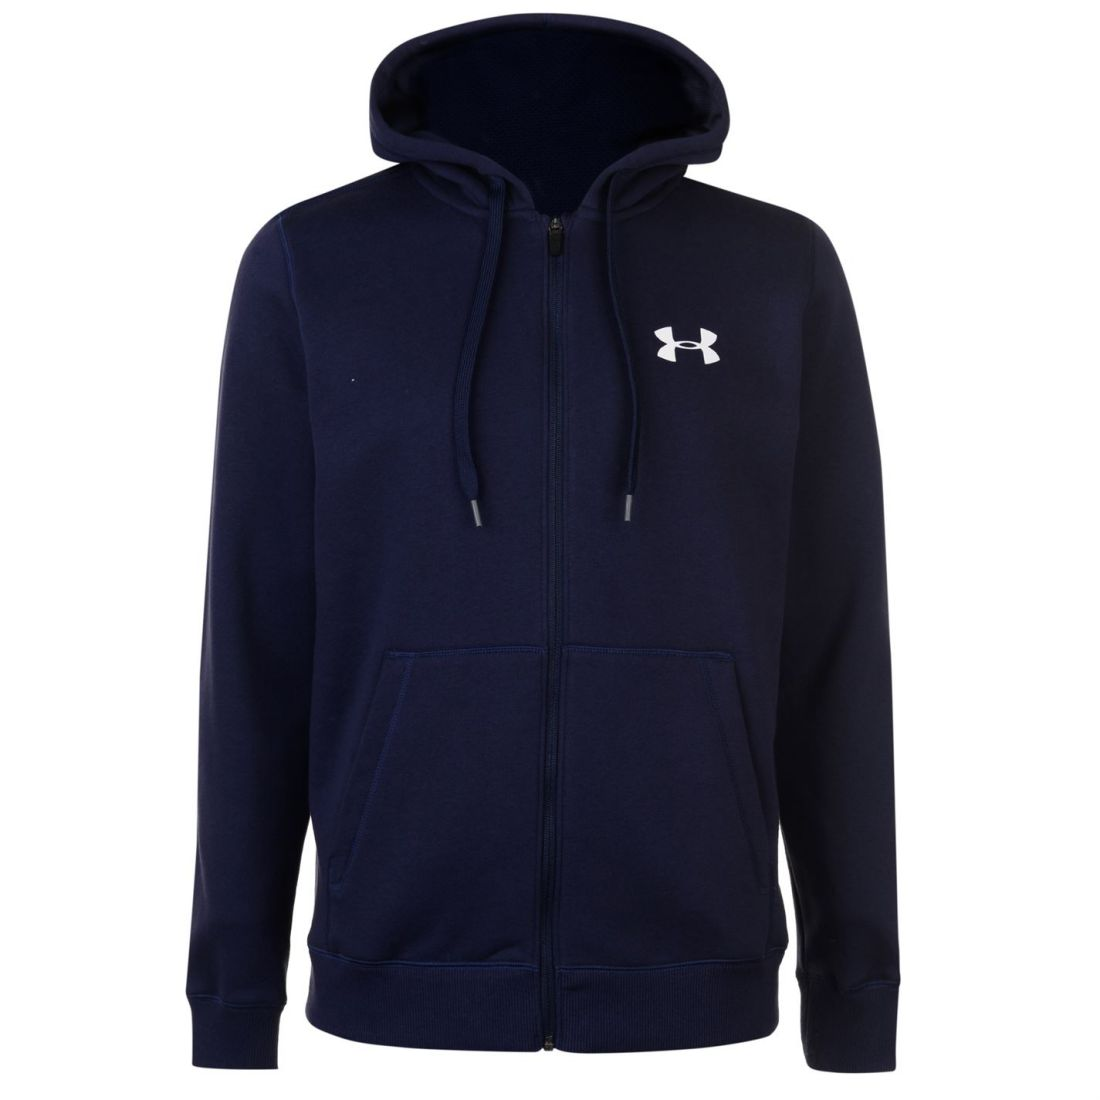 Under-Armour-Mens-Rival-Fitted-Full-Zip-Hoody-Hoodie-Hooded-Top-Breathable-Mesh thumbnail 13